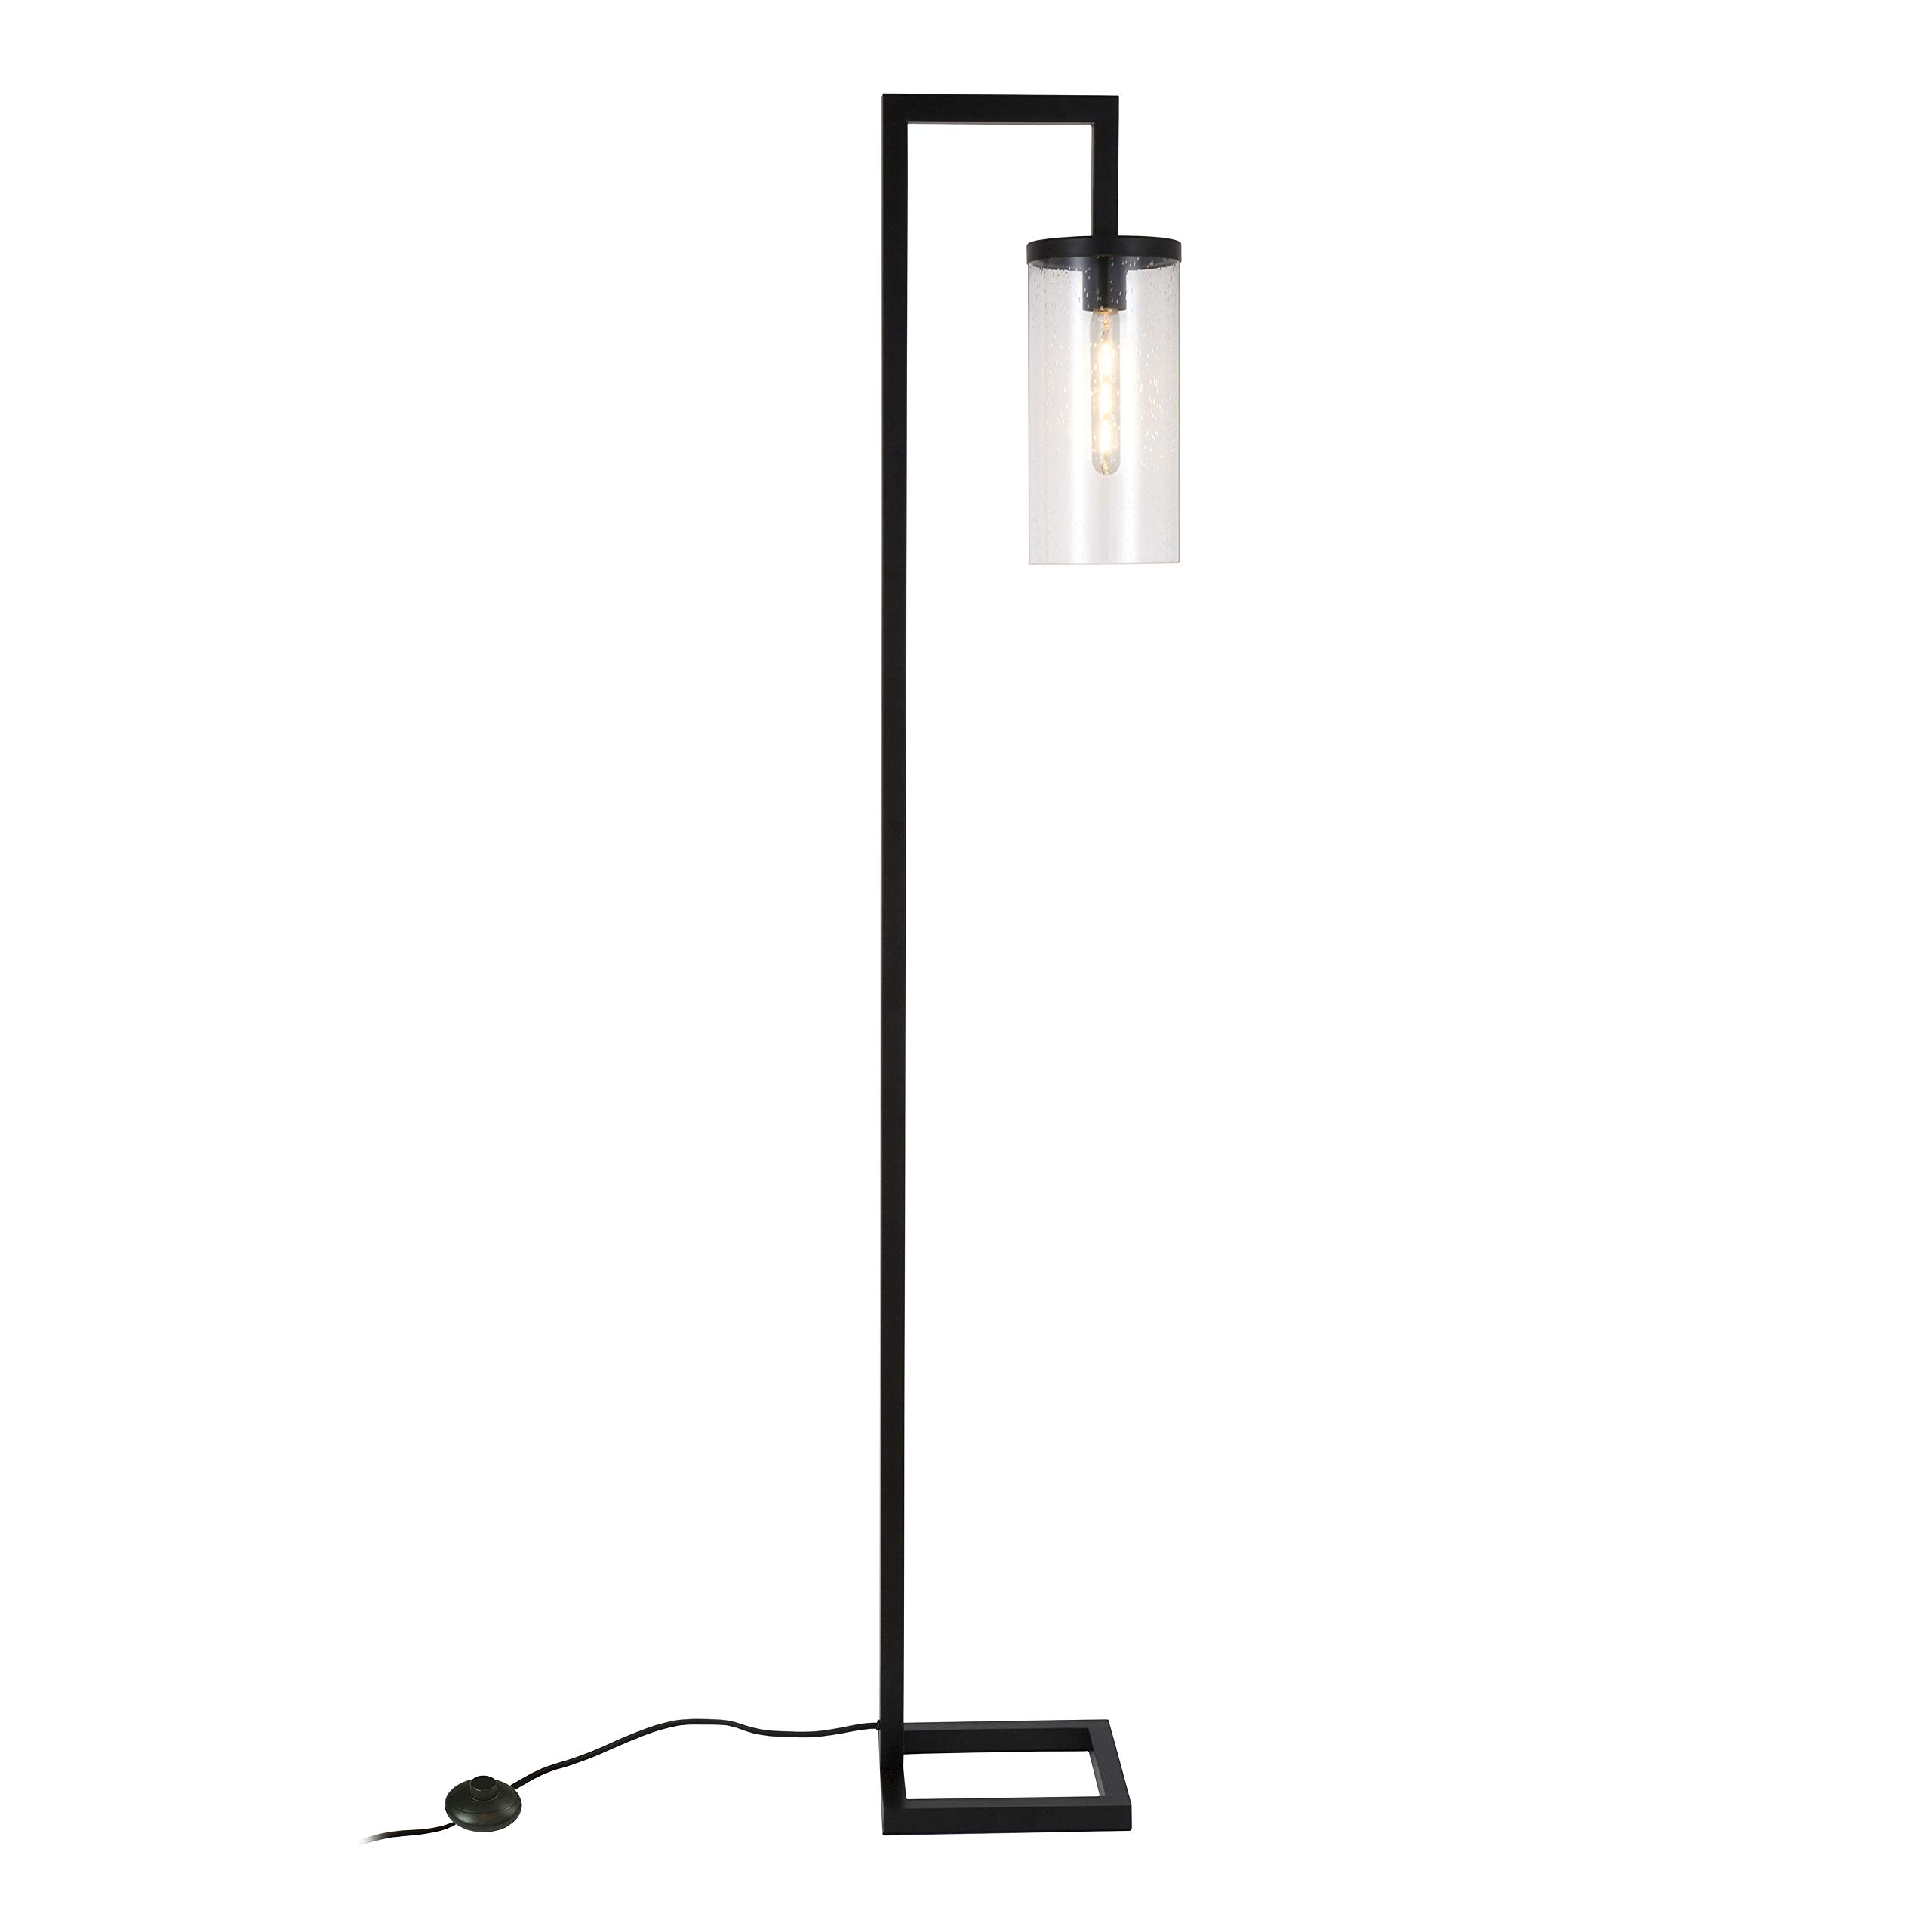 Henn&Hart FL0014 Modern Farmhouse seeded Task Lamp, One Size Black by Henn&Hart (Image #10)